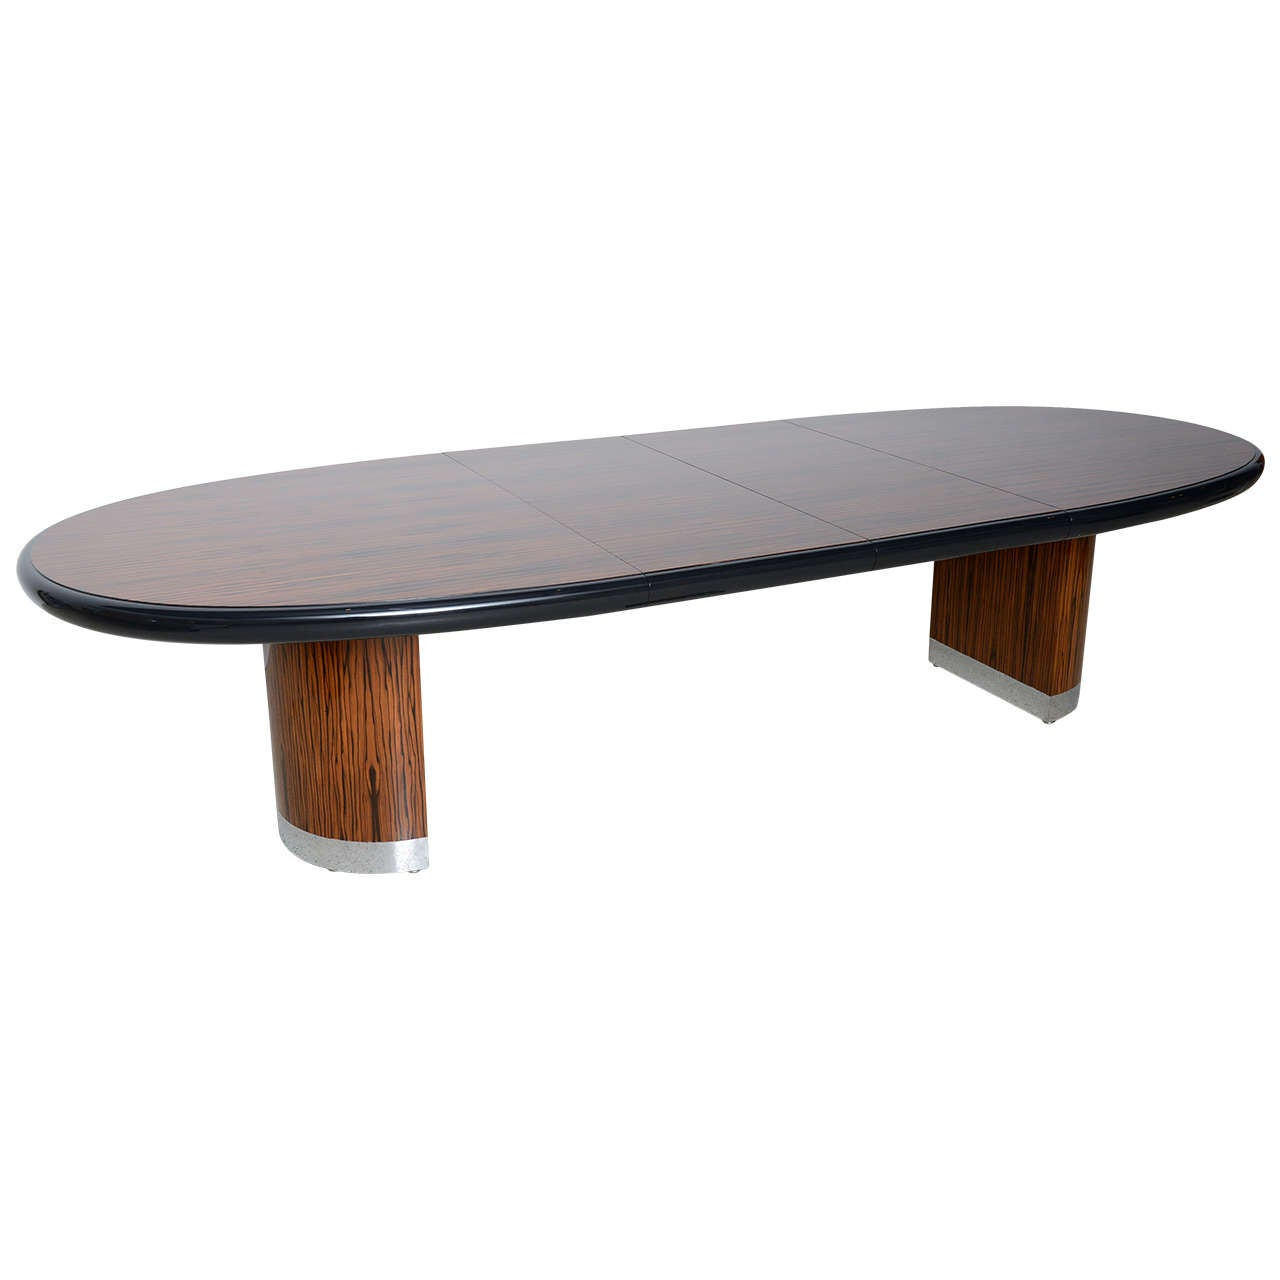 American Modern Zebrawood and Chrome Extension Dining Table by Vladimir Kagan